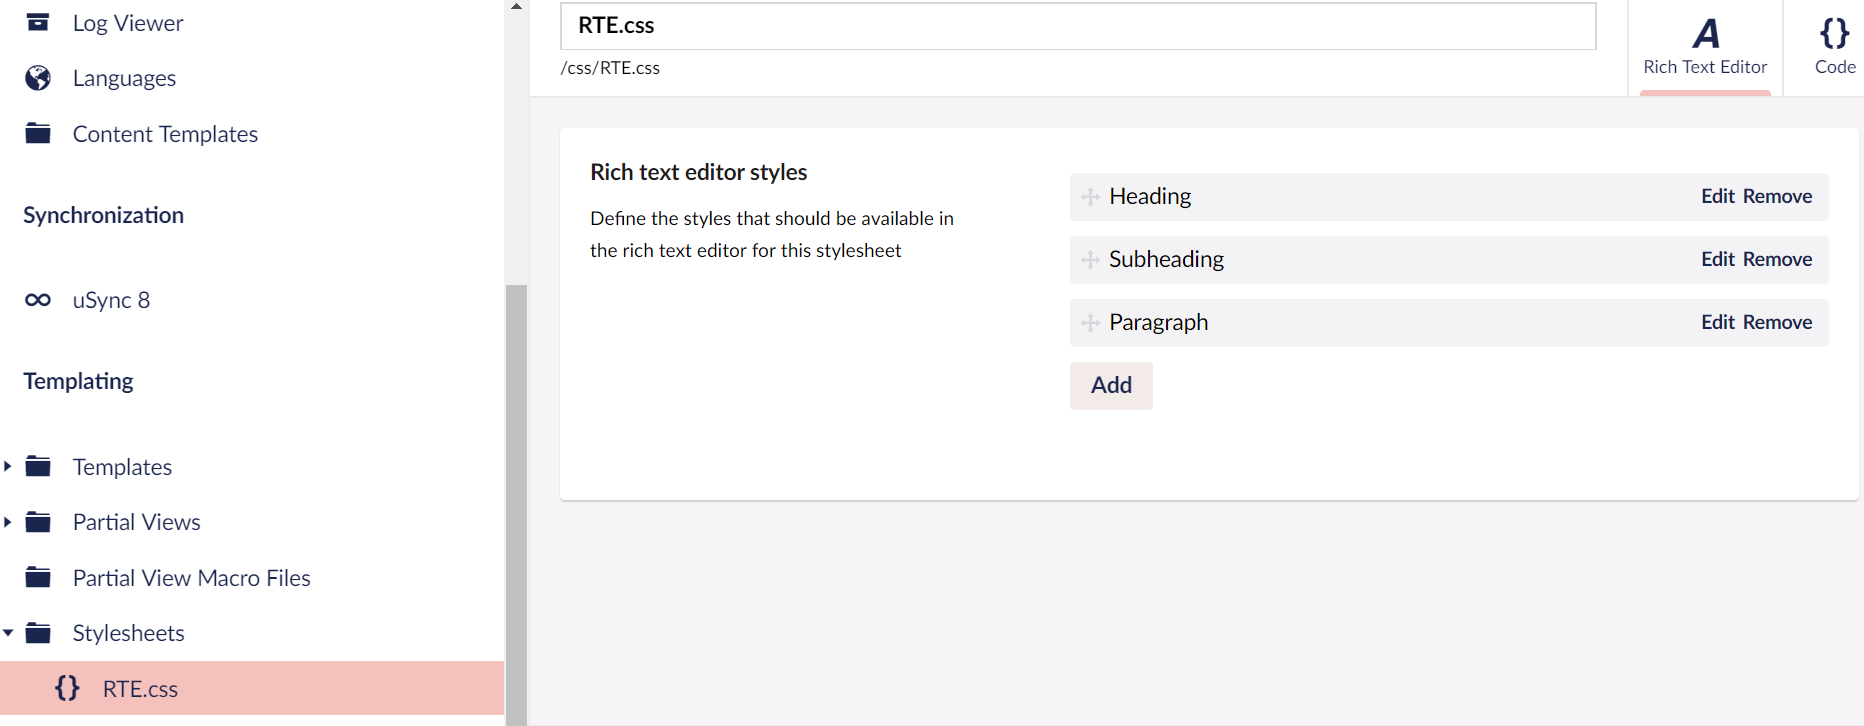 rich text editor user styles dropdown customization not available